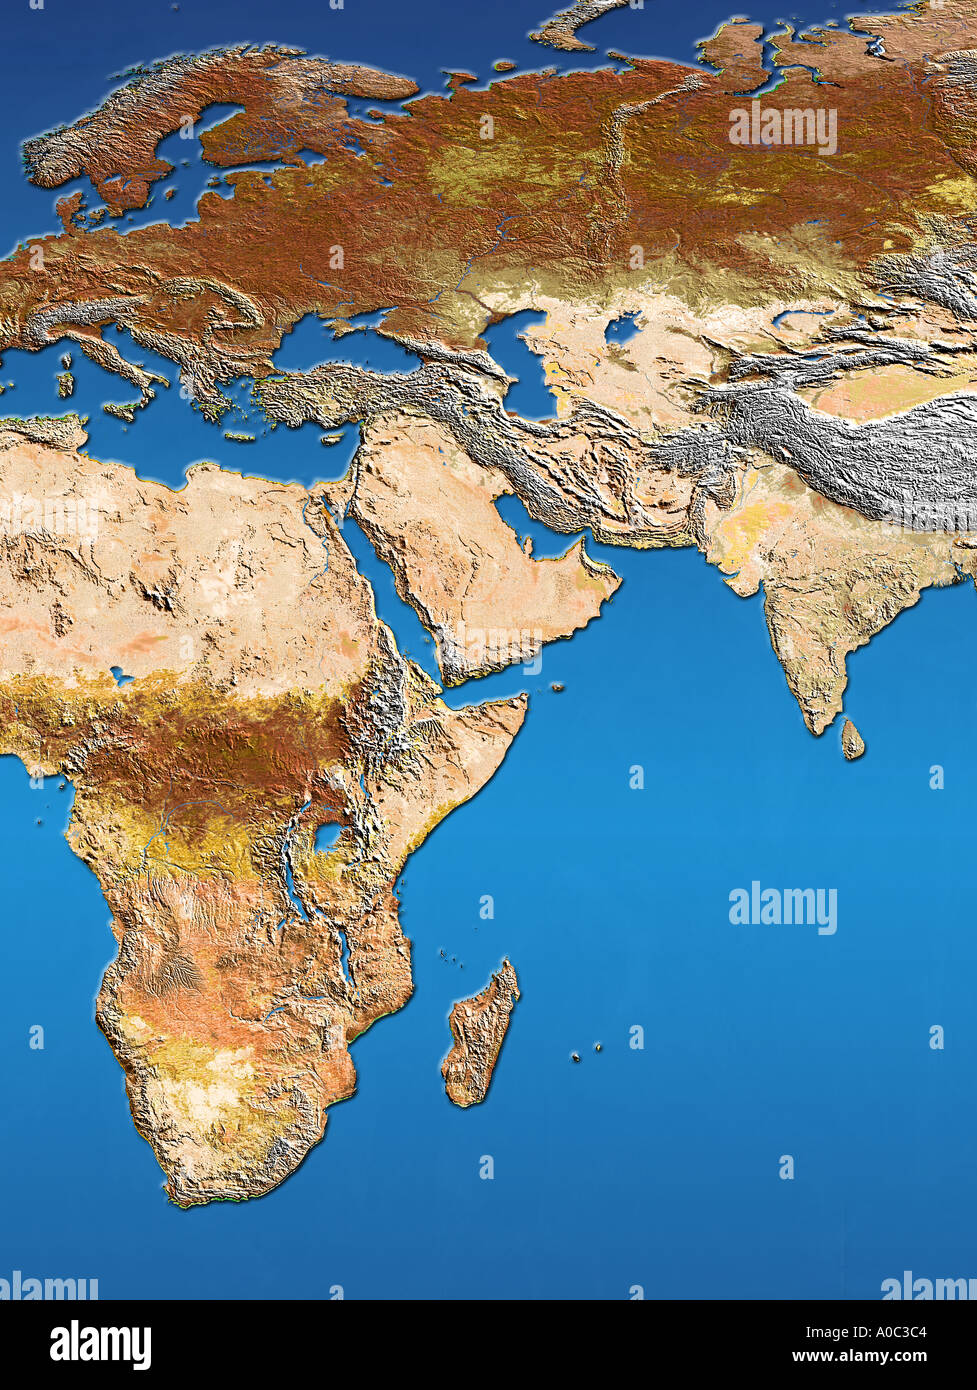 Map Of India And Africa.Satellite Image Map Of Africa Arabia Europe Scandinavia India And